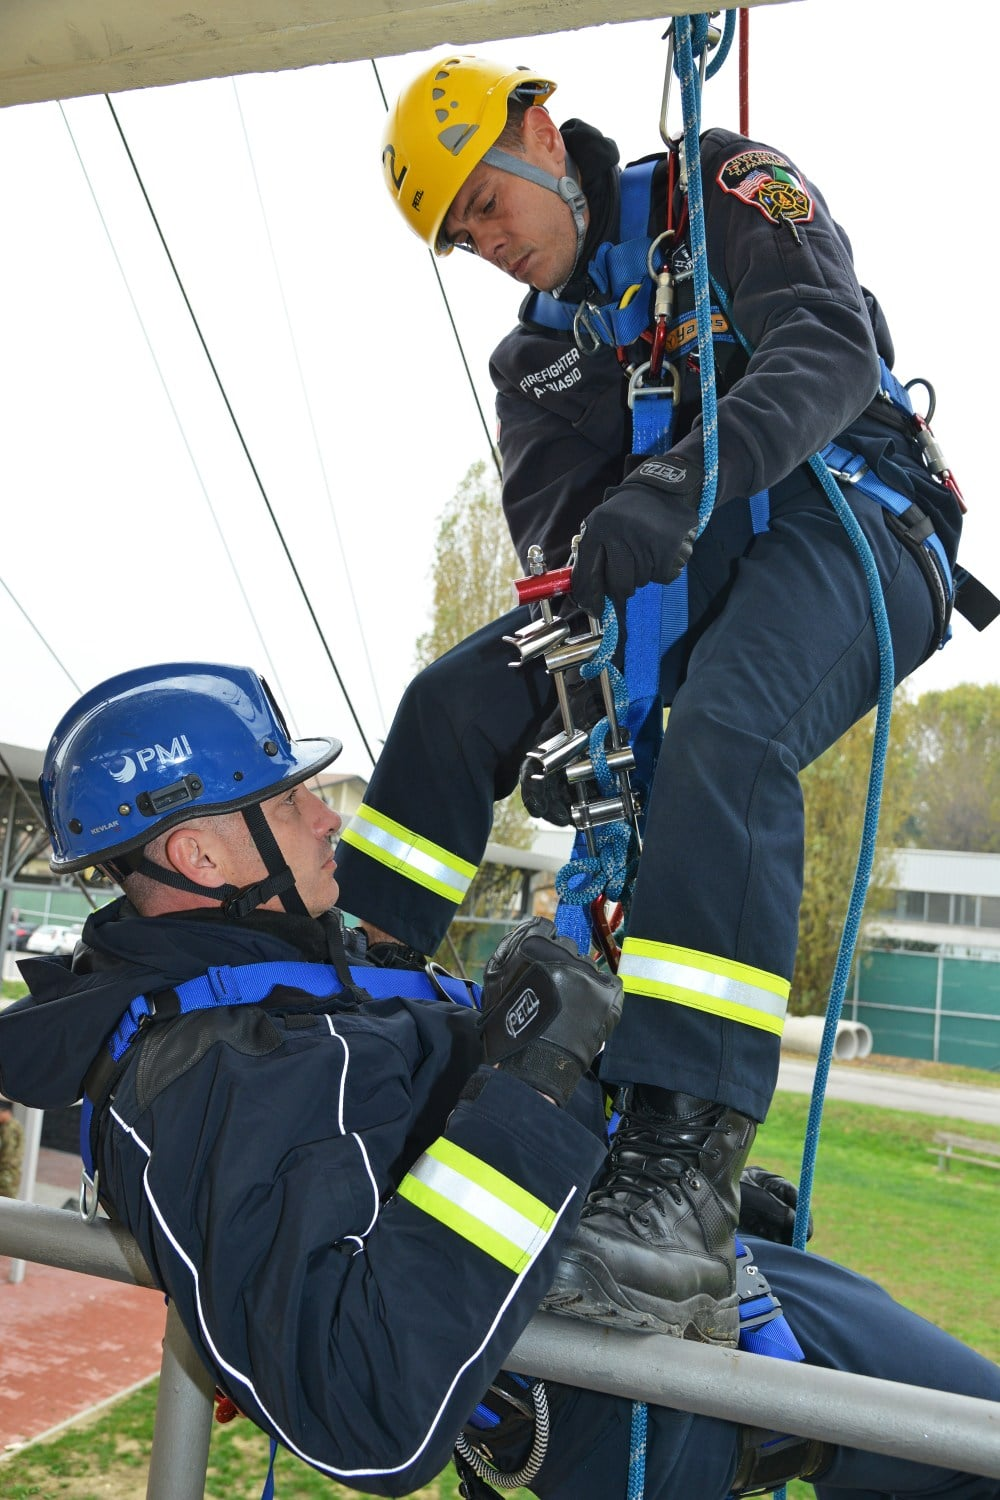 DOD TECHNICAL ROPE RESCUE 1, USAG ITALY FIRE DEPARTMENT